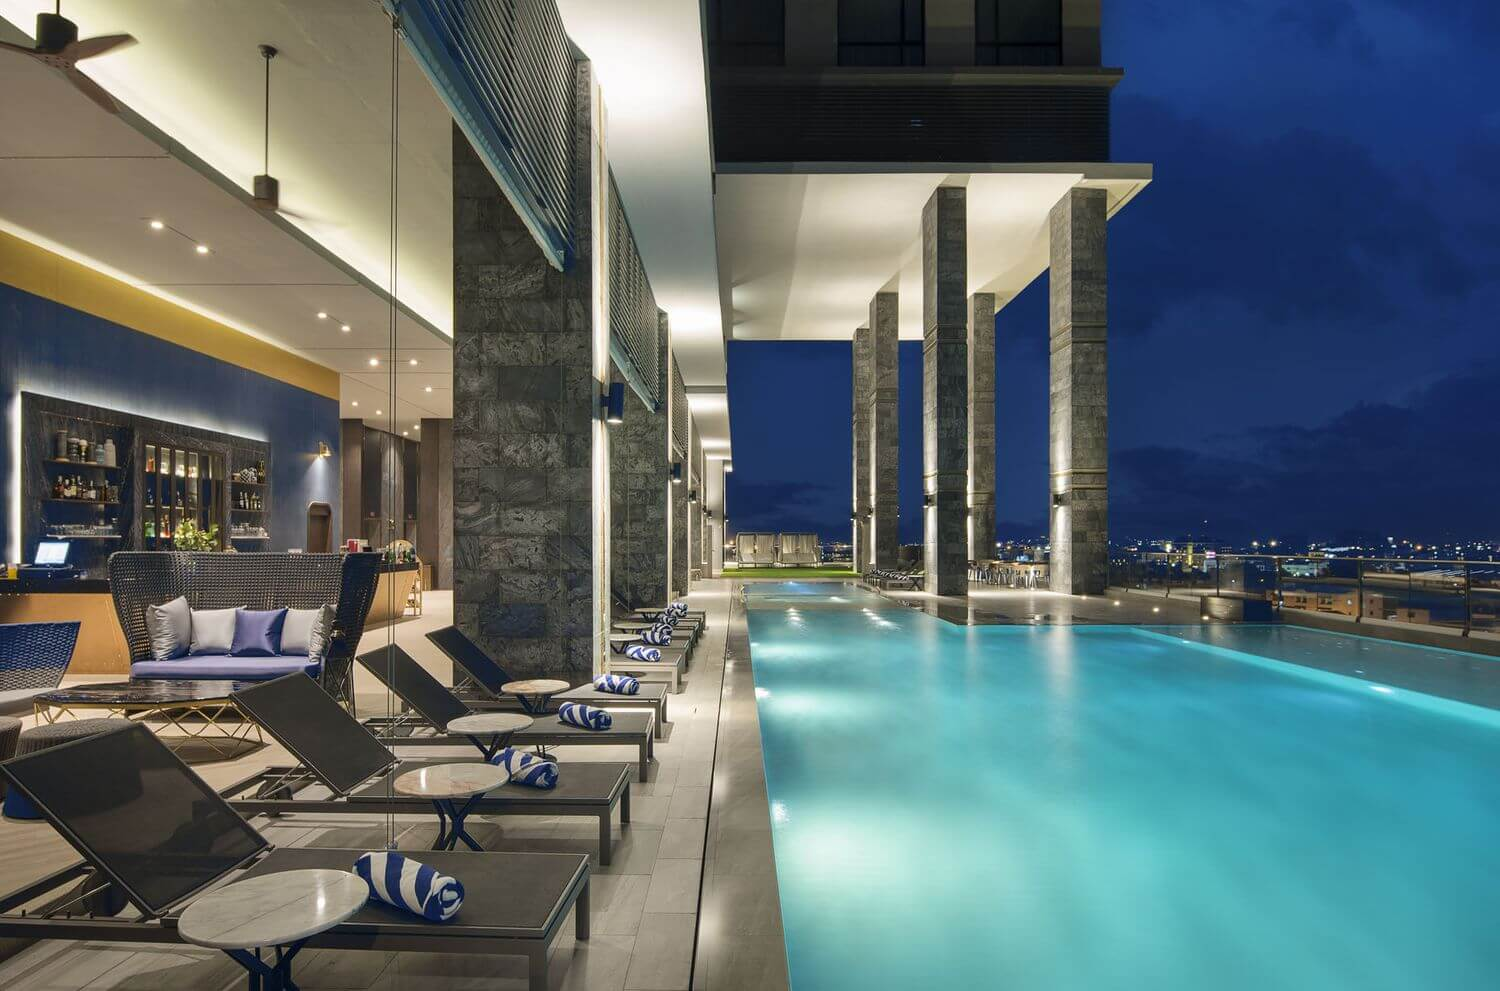 Brighton grand hotel pattaya a new 5 star hotel located on na klua road for Hotels with swimming pools in brighton